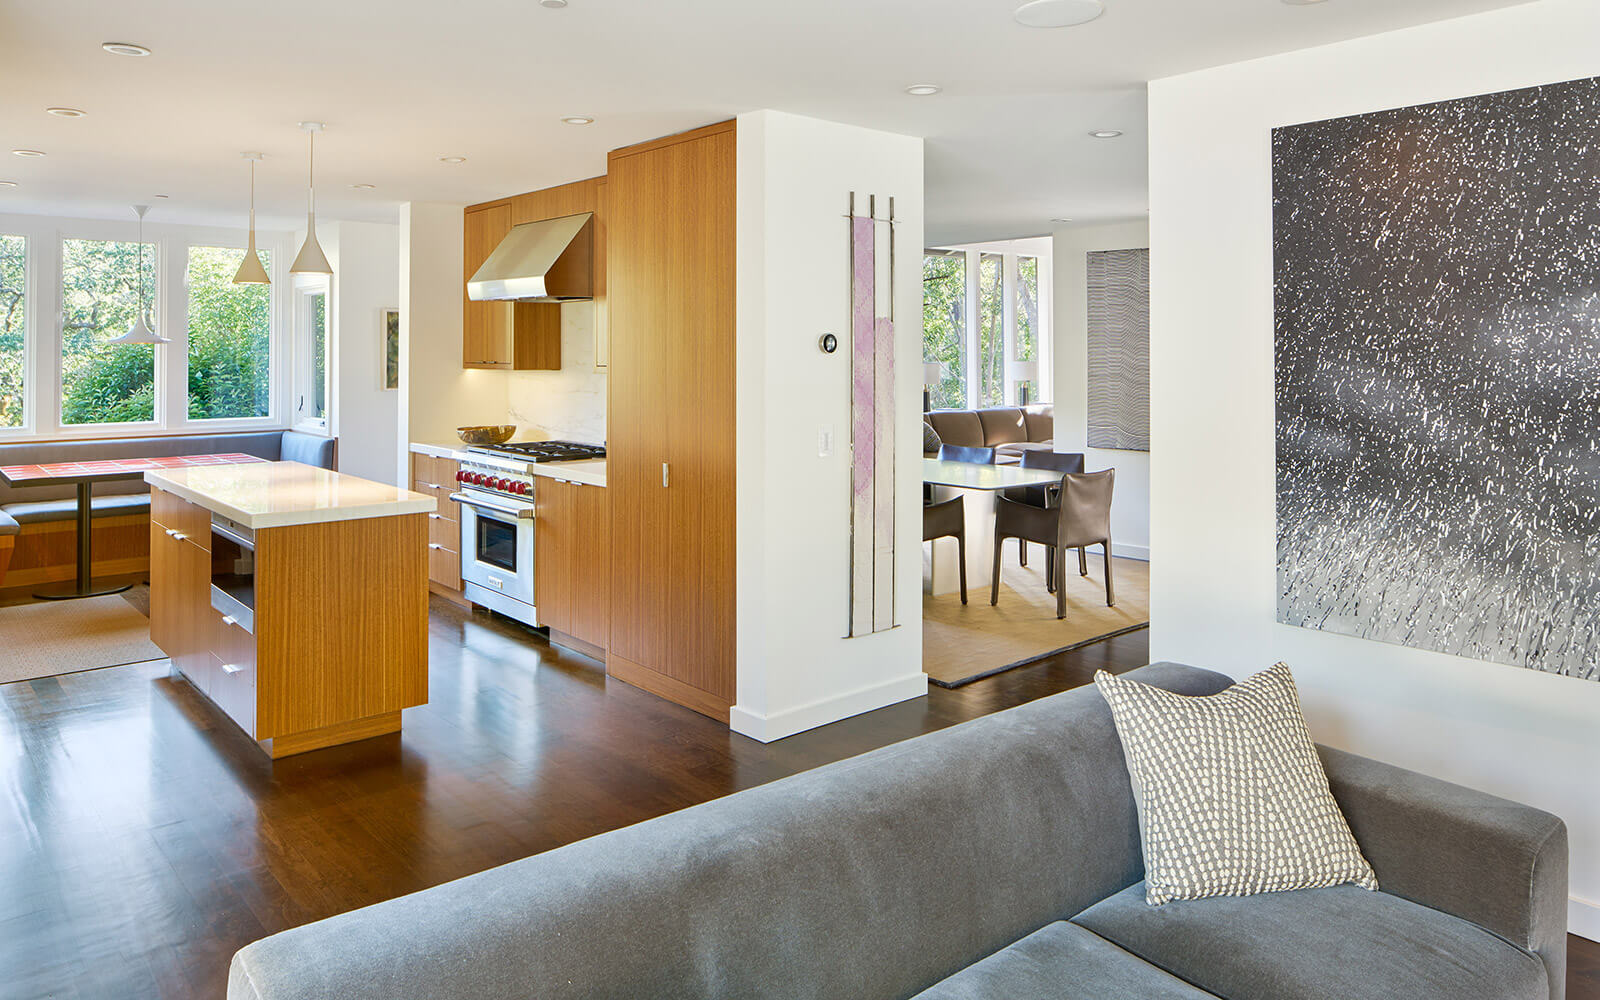 studio vara residential Kentfield kitchen dining area